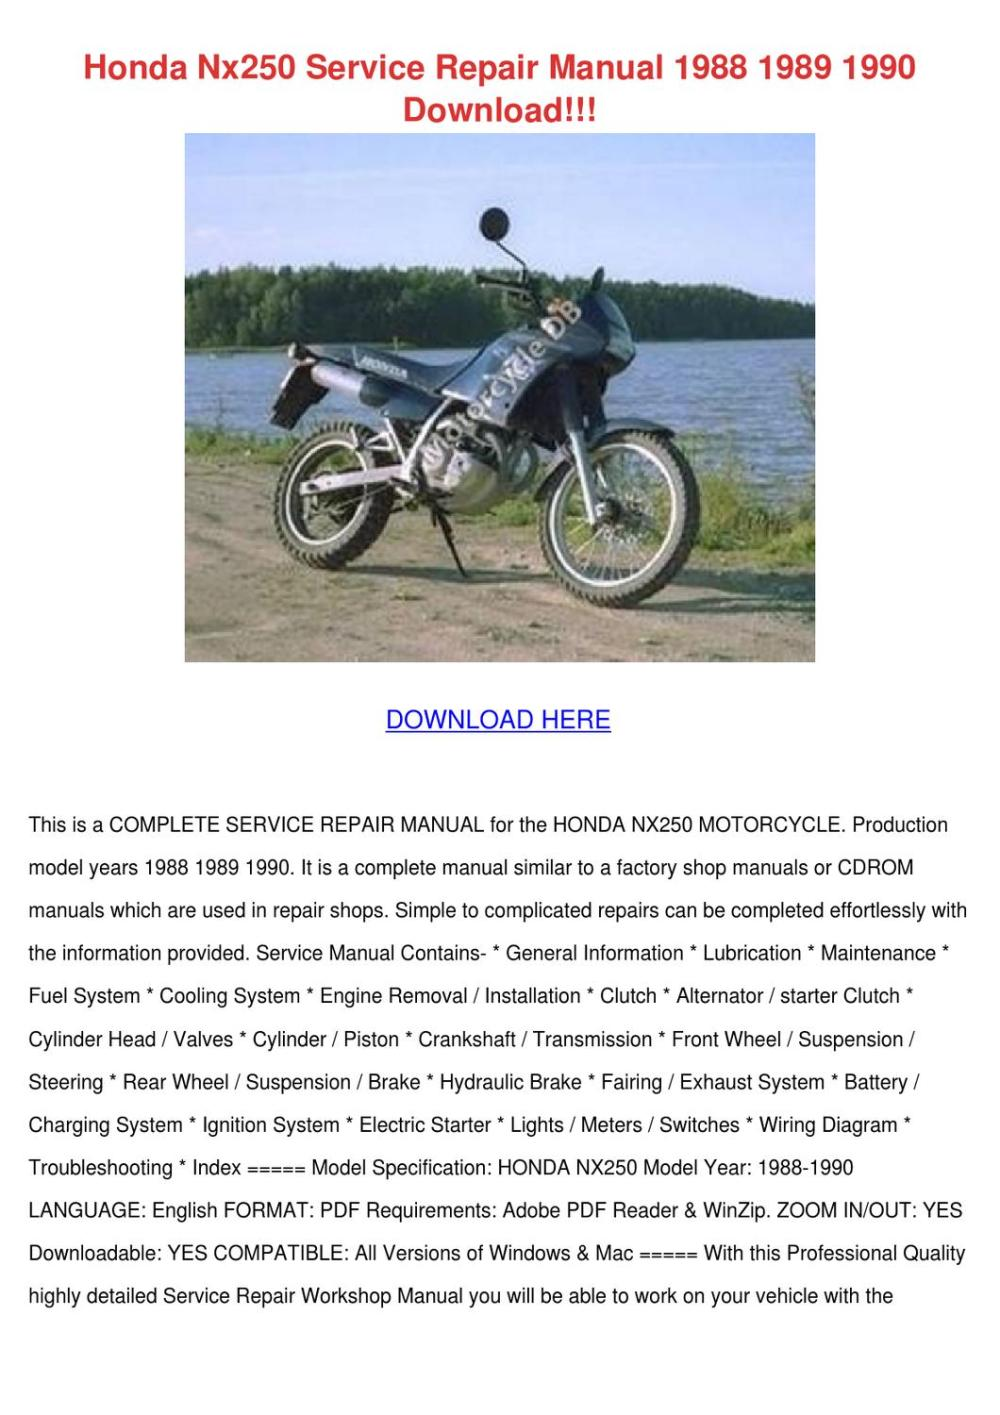 medium resolution of honda nx250 service repair manual 1988 1989 1 by temika jawad issuuhonda nx250 service repair manual